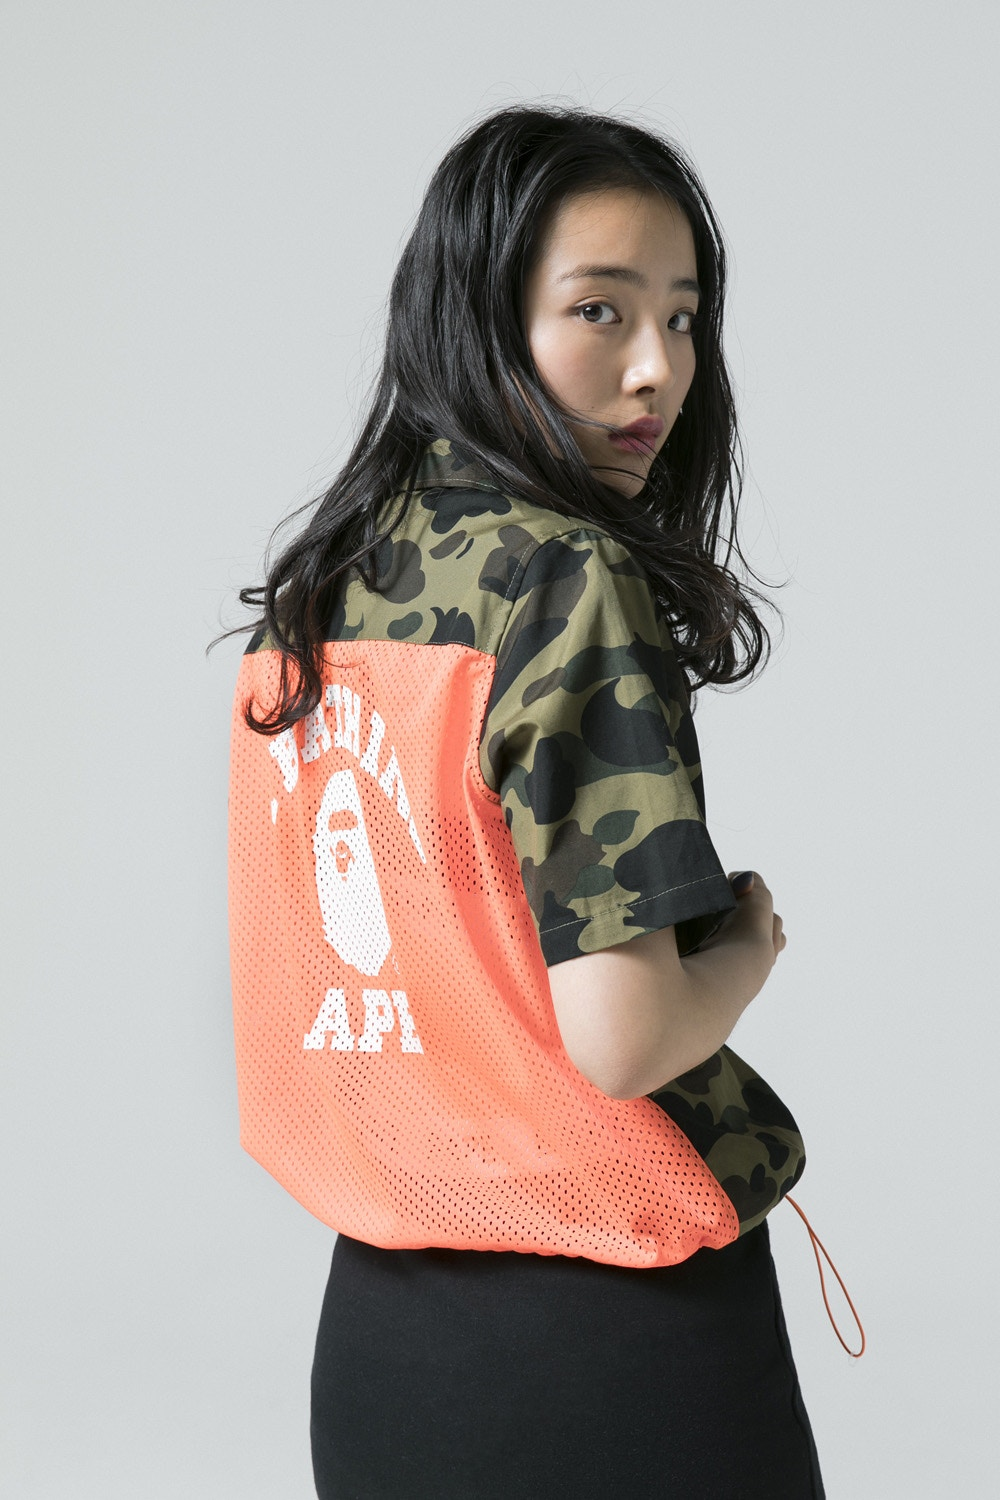 """milford square single asian girls Source: anna akana 'why guys like asian girls'  me to give you a nod of  approval, shake your hand, and say, """"it's so nice to meet you."""